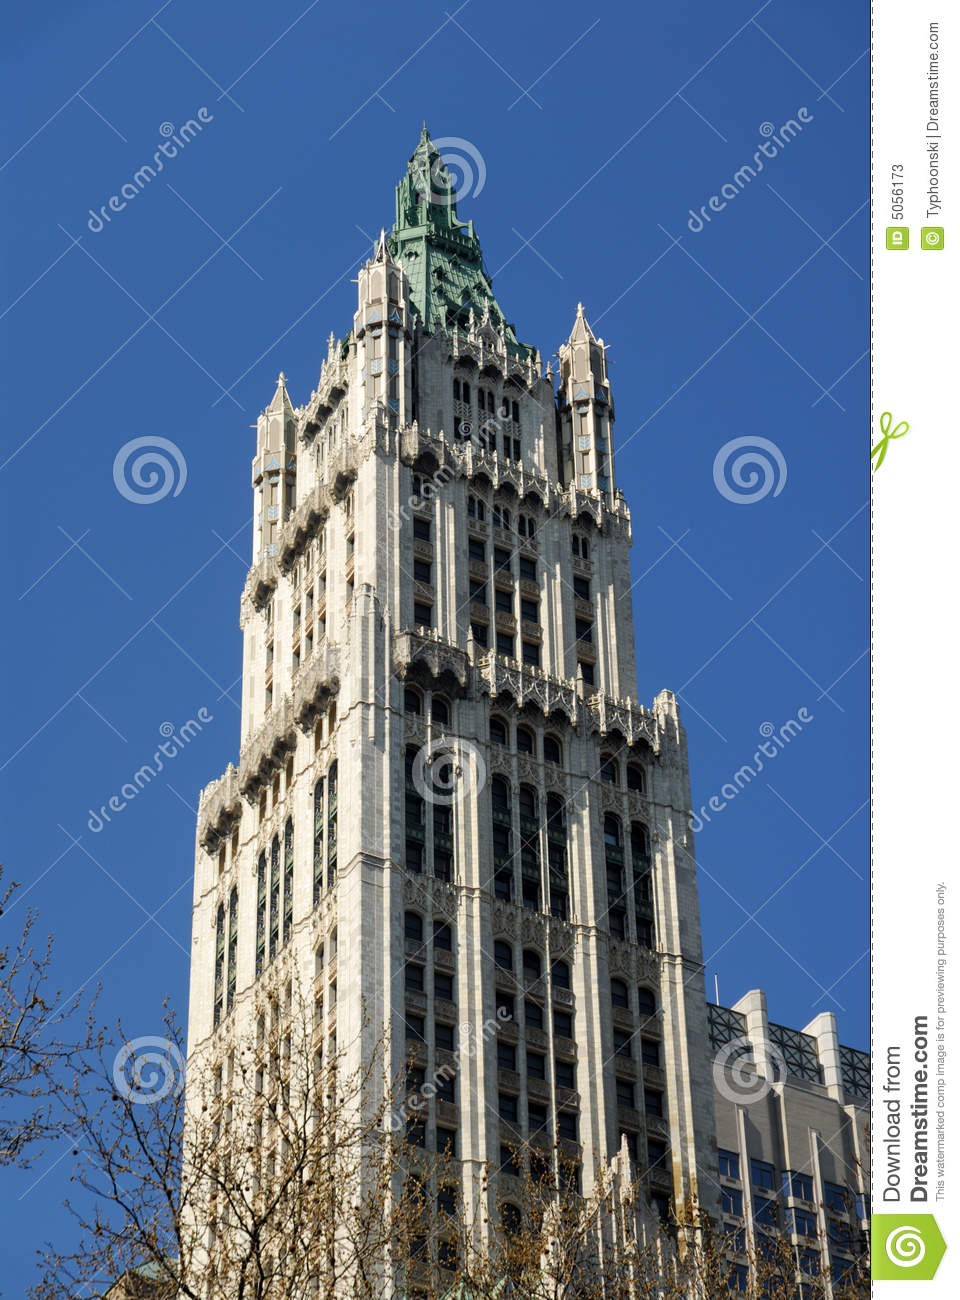 Art deco style in building in new york stock image image for Deco new york